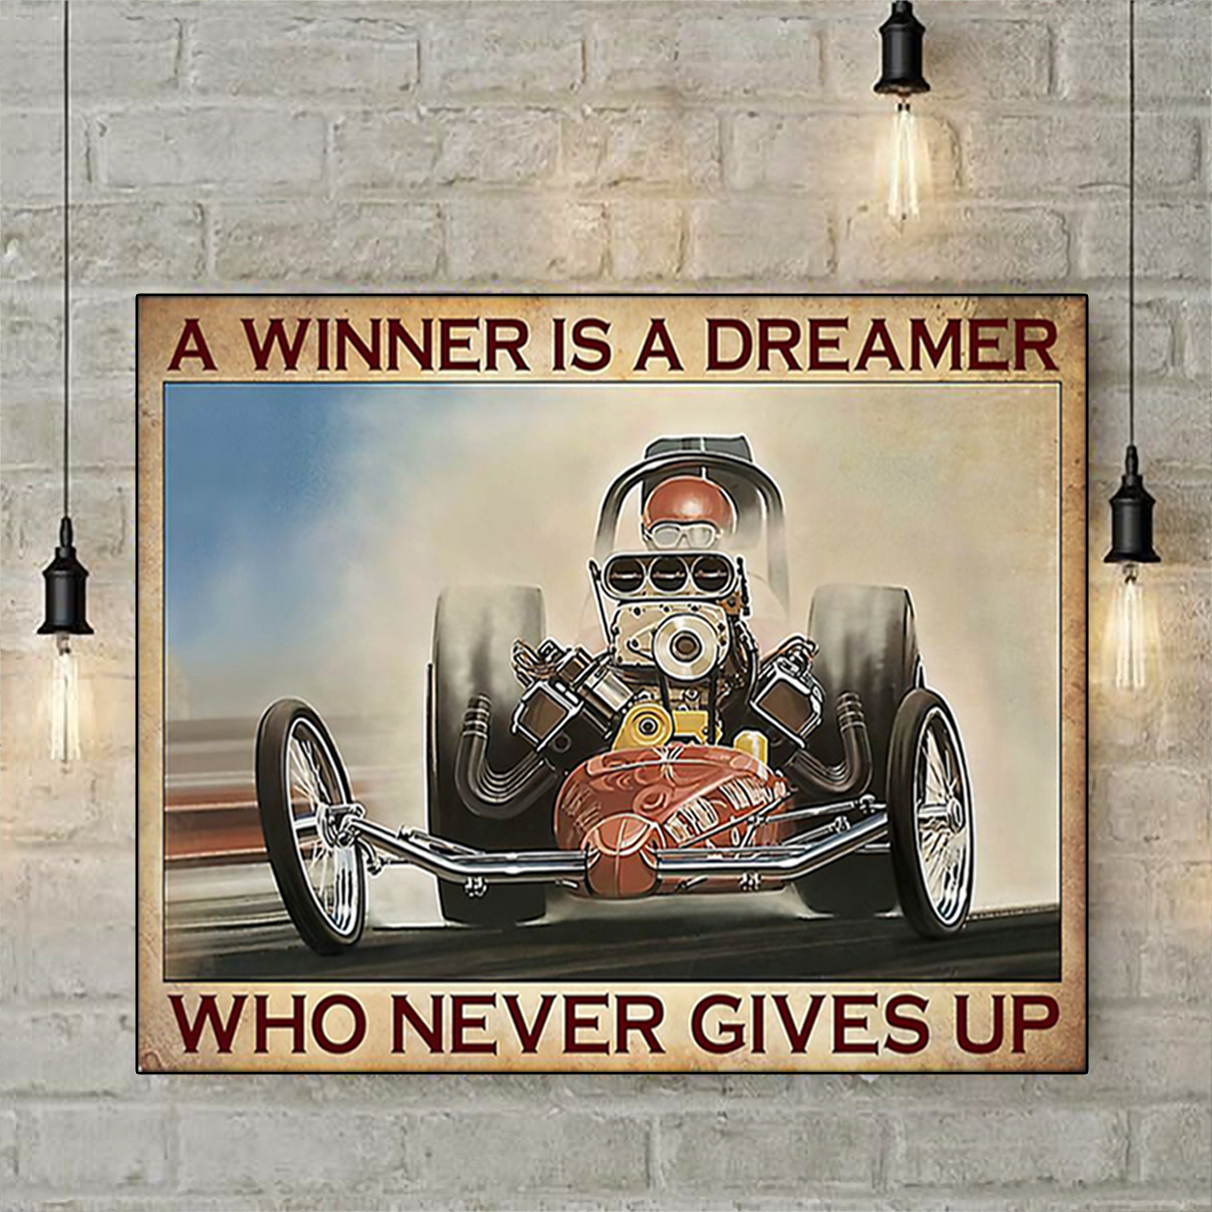 Drag racing a winner is a dreamer who never gives up poster A1